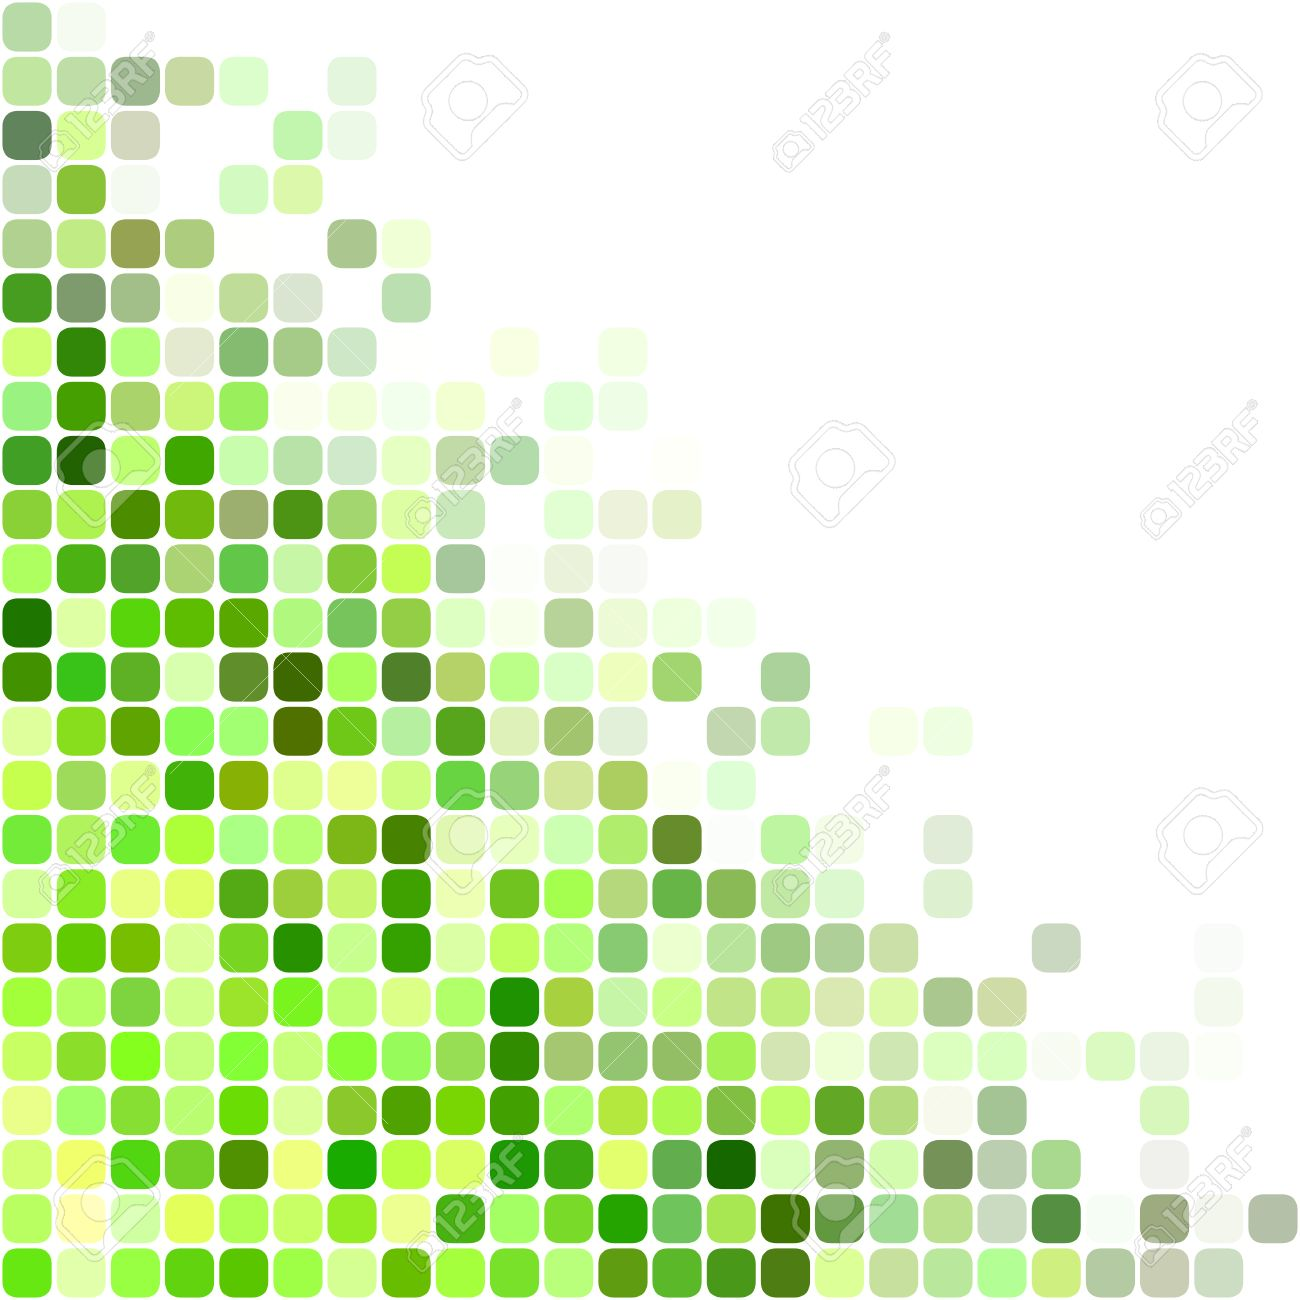 Green Color Square Mosaic Vector Background Design Royalty Free